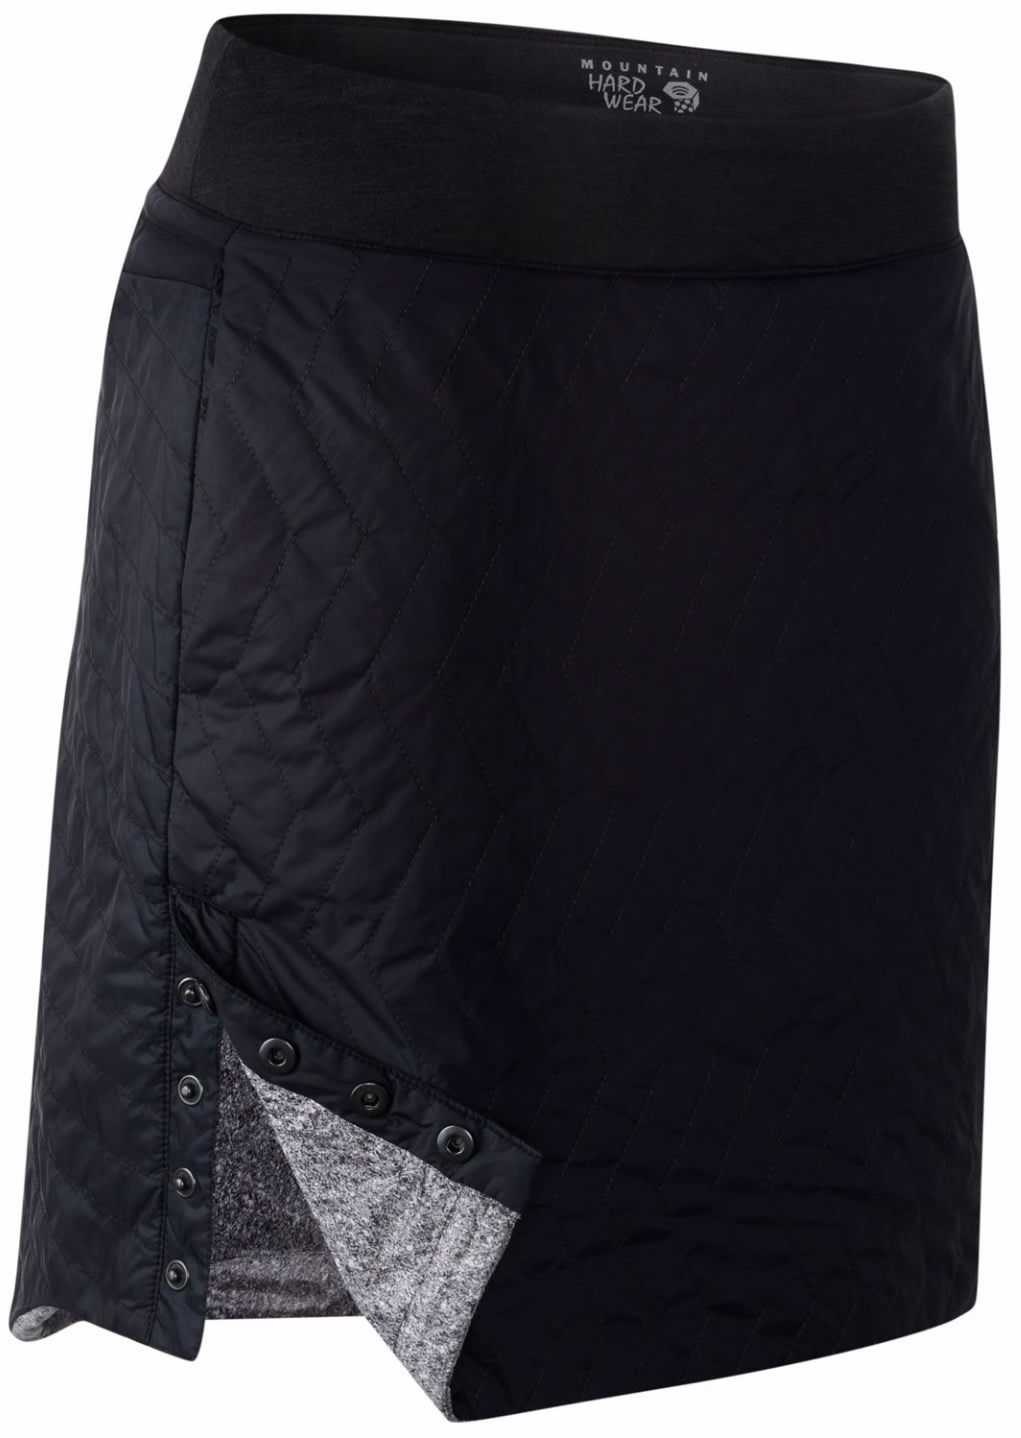 Mountain Hardwear Trekkin Insulated Knee Skirt Womens